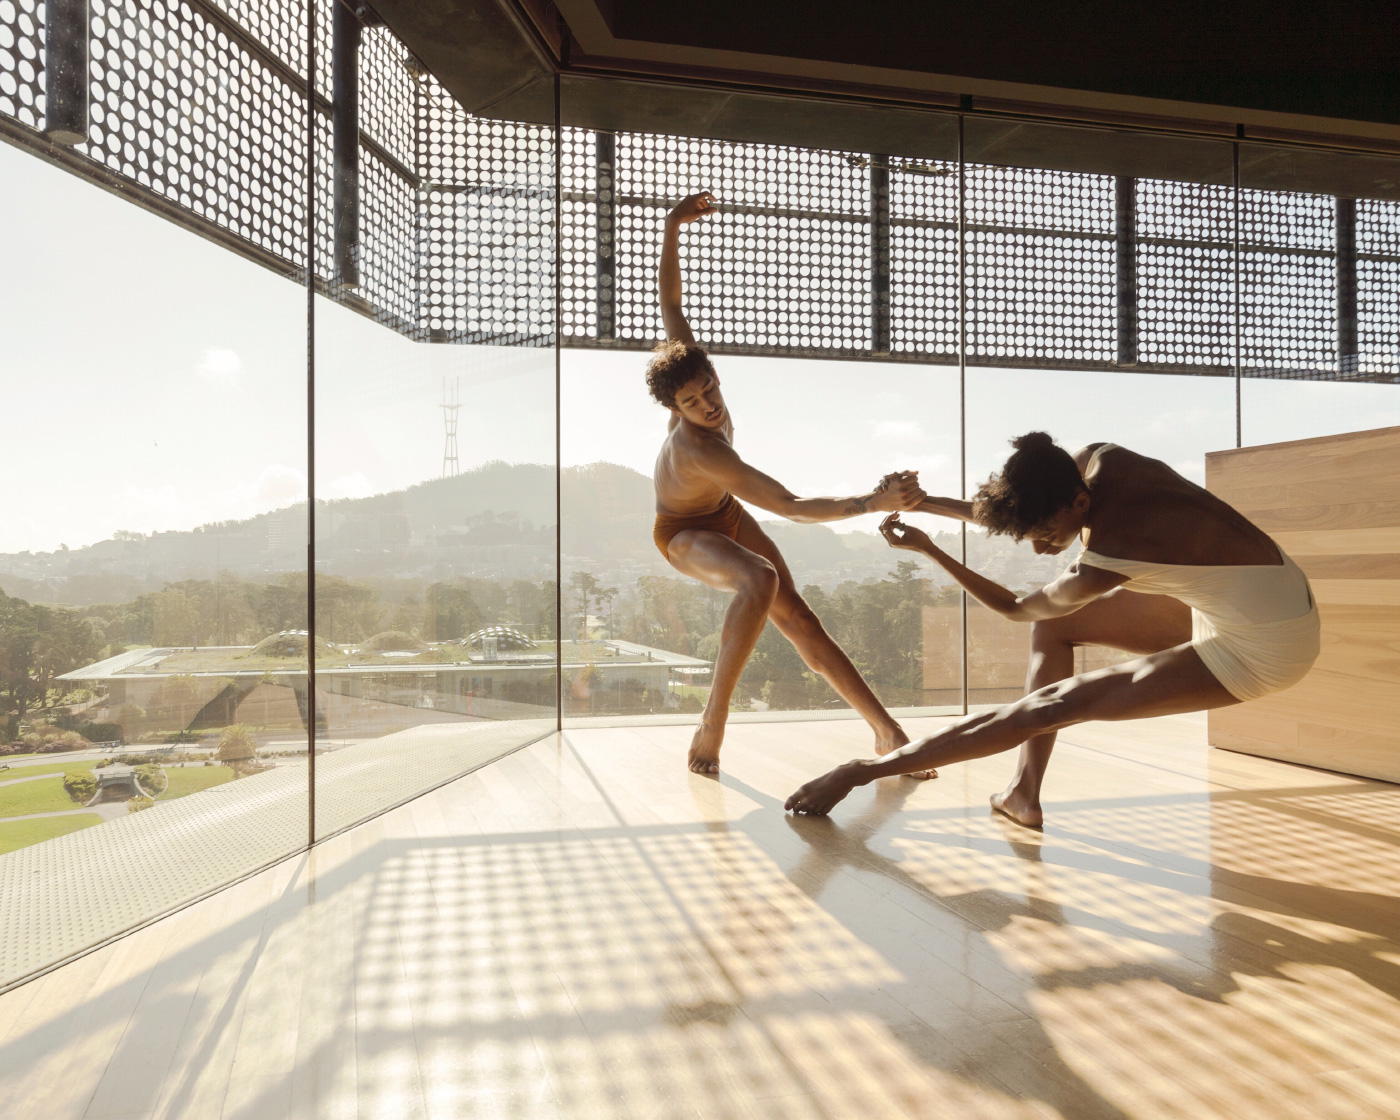 Photo of two dancers swinging inside of an enclosed deck